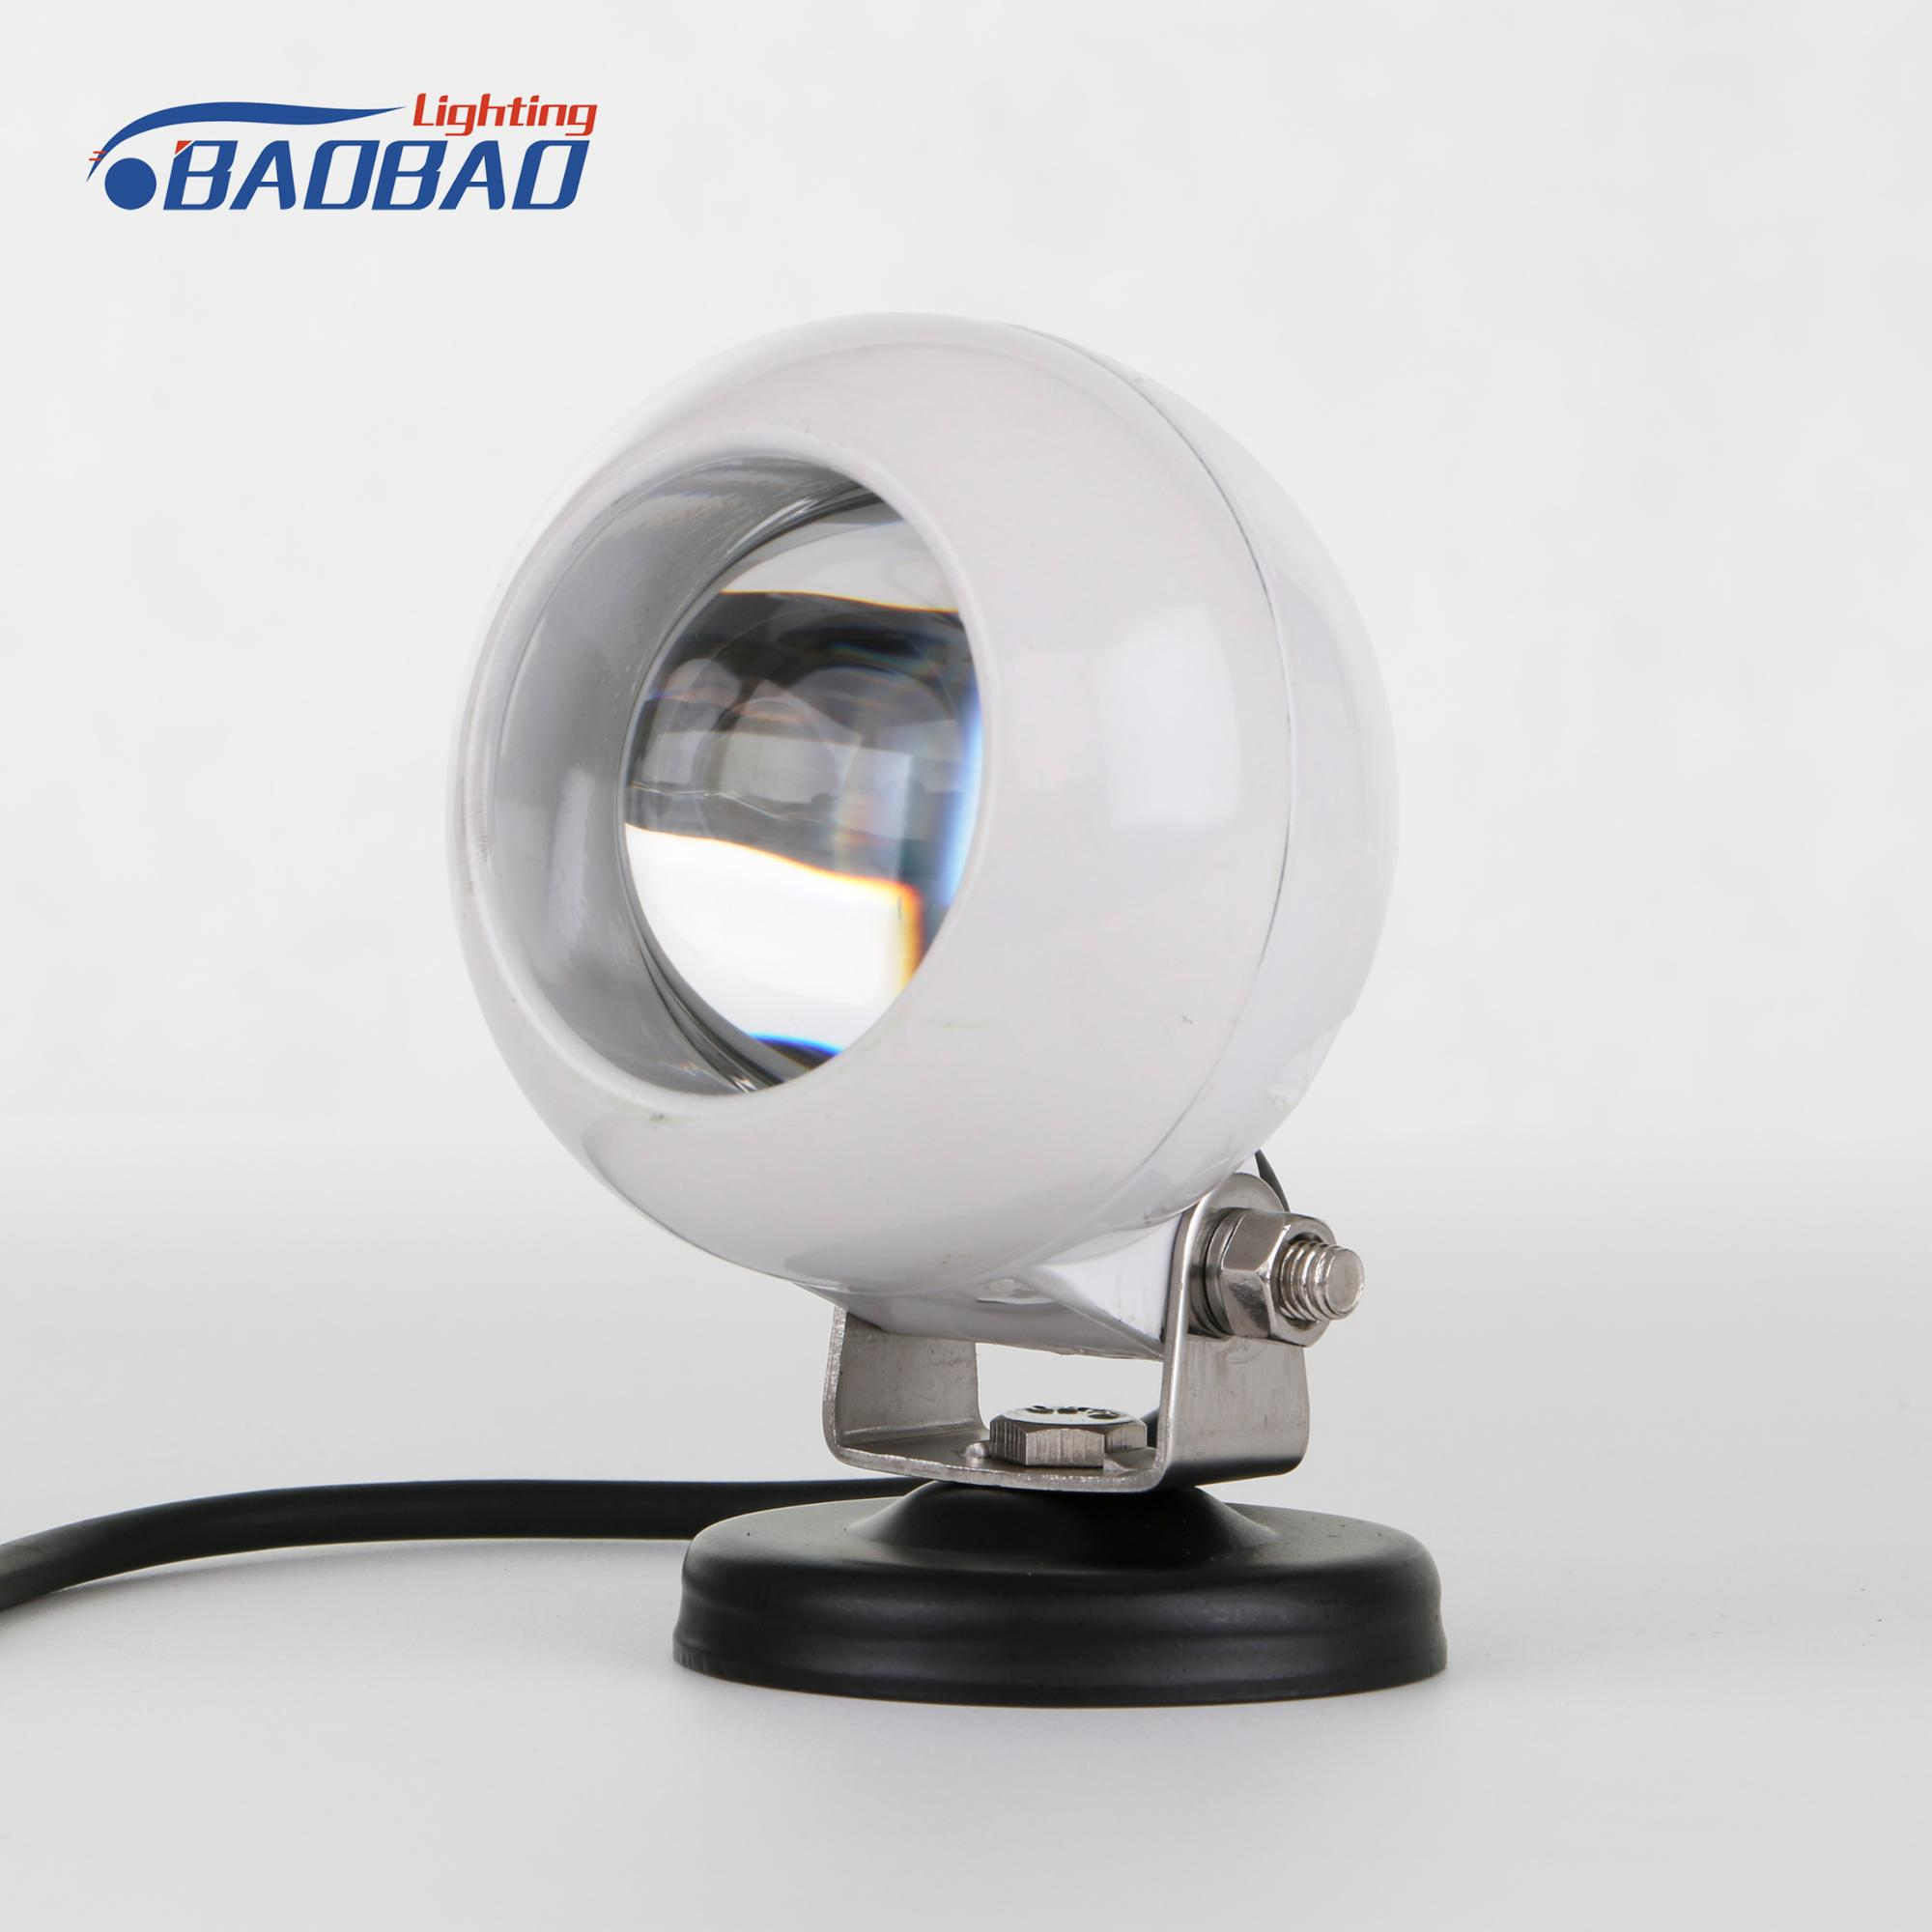 Guangzhou auto accessories market 10-40v led work light 25w,led worklamp for car